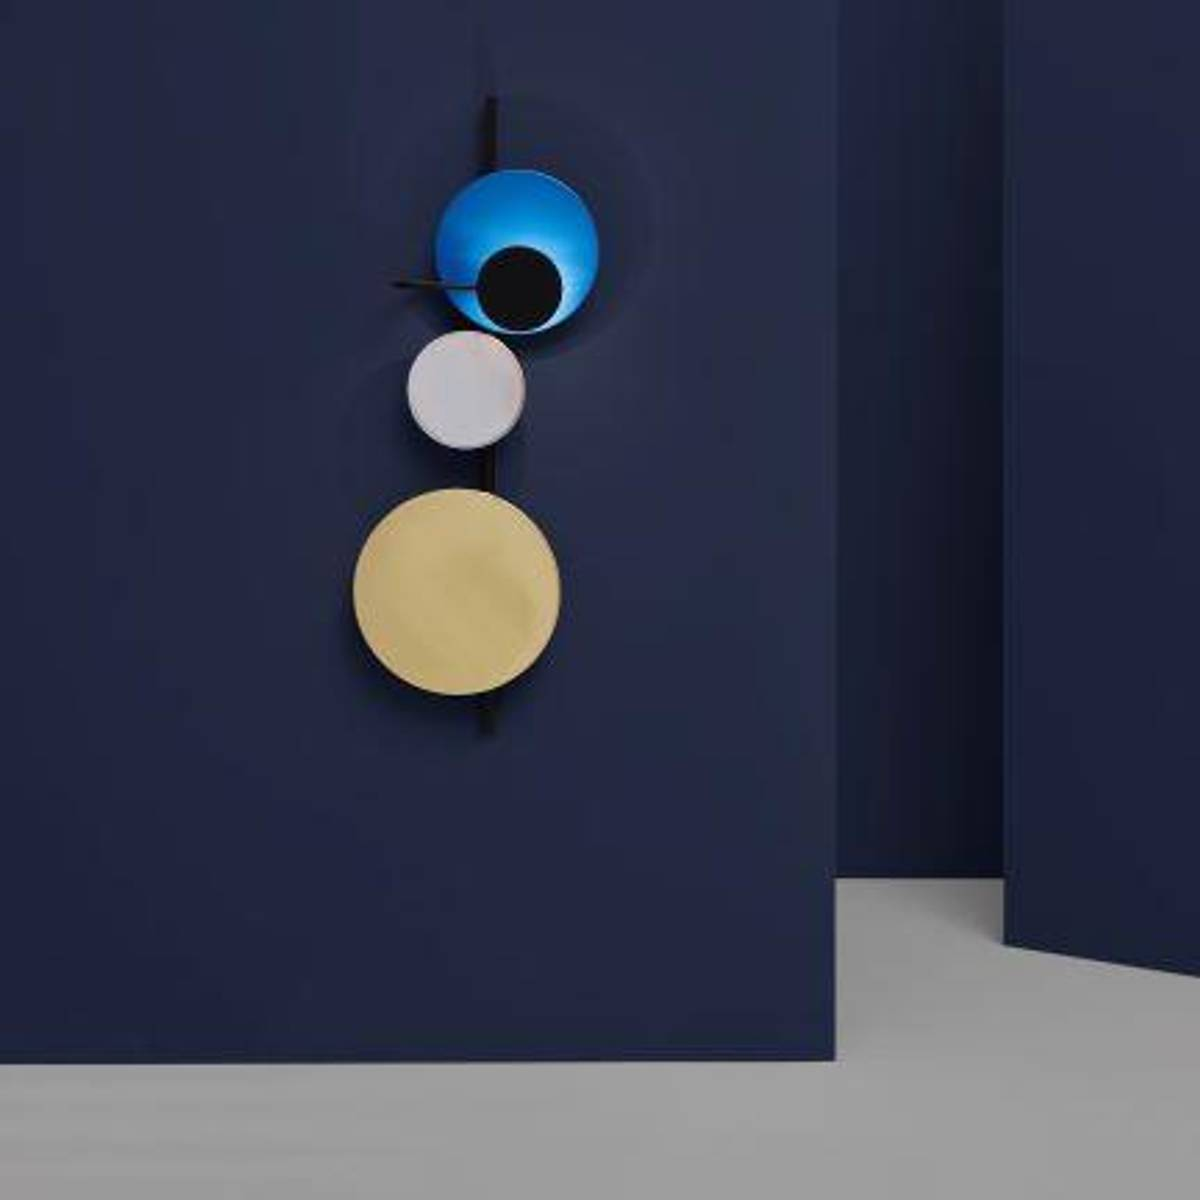 Planet Vegglampe Electric Blue, PWtbS